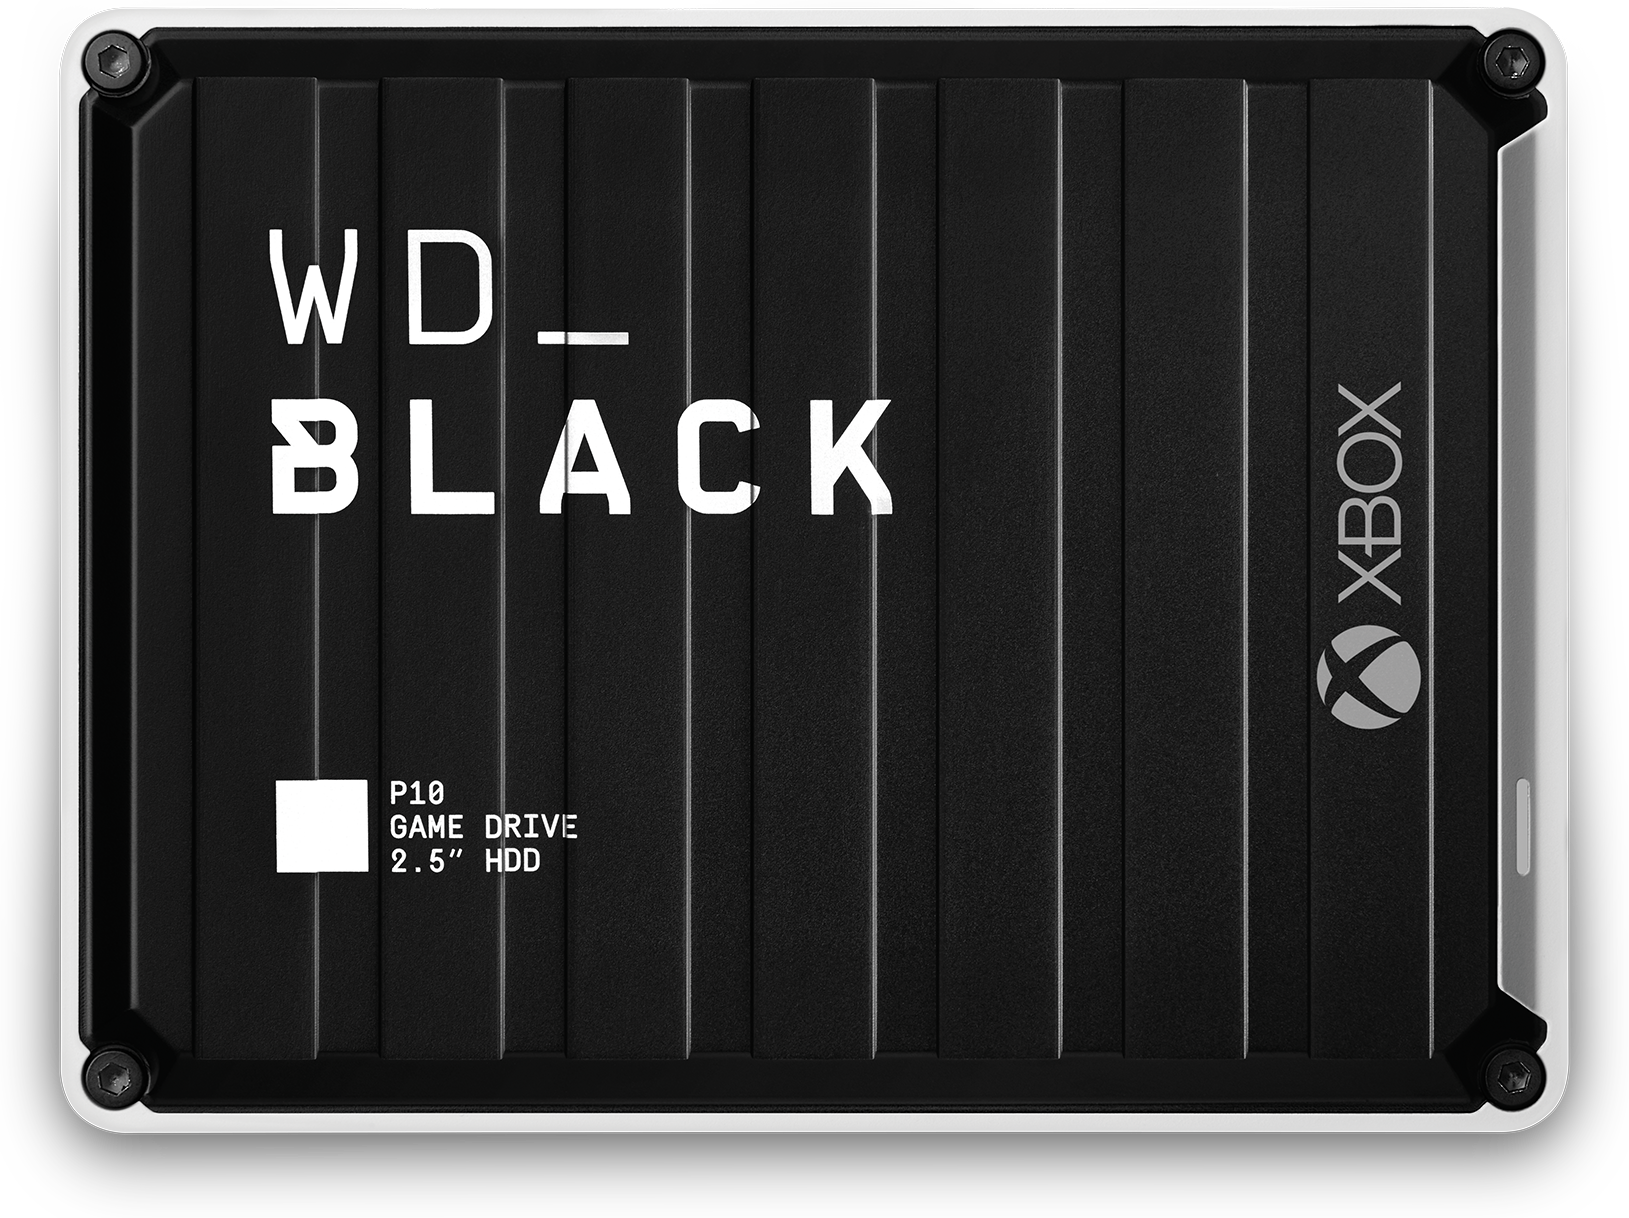 RE3xZtW?ver=8e8a - Western Digital WD_Black P10 Game Drive for Xbox One